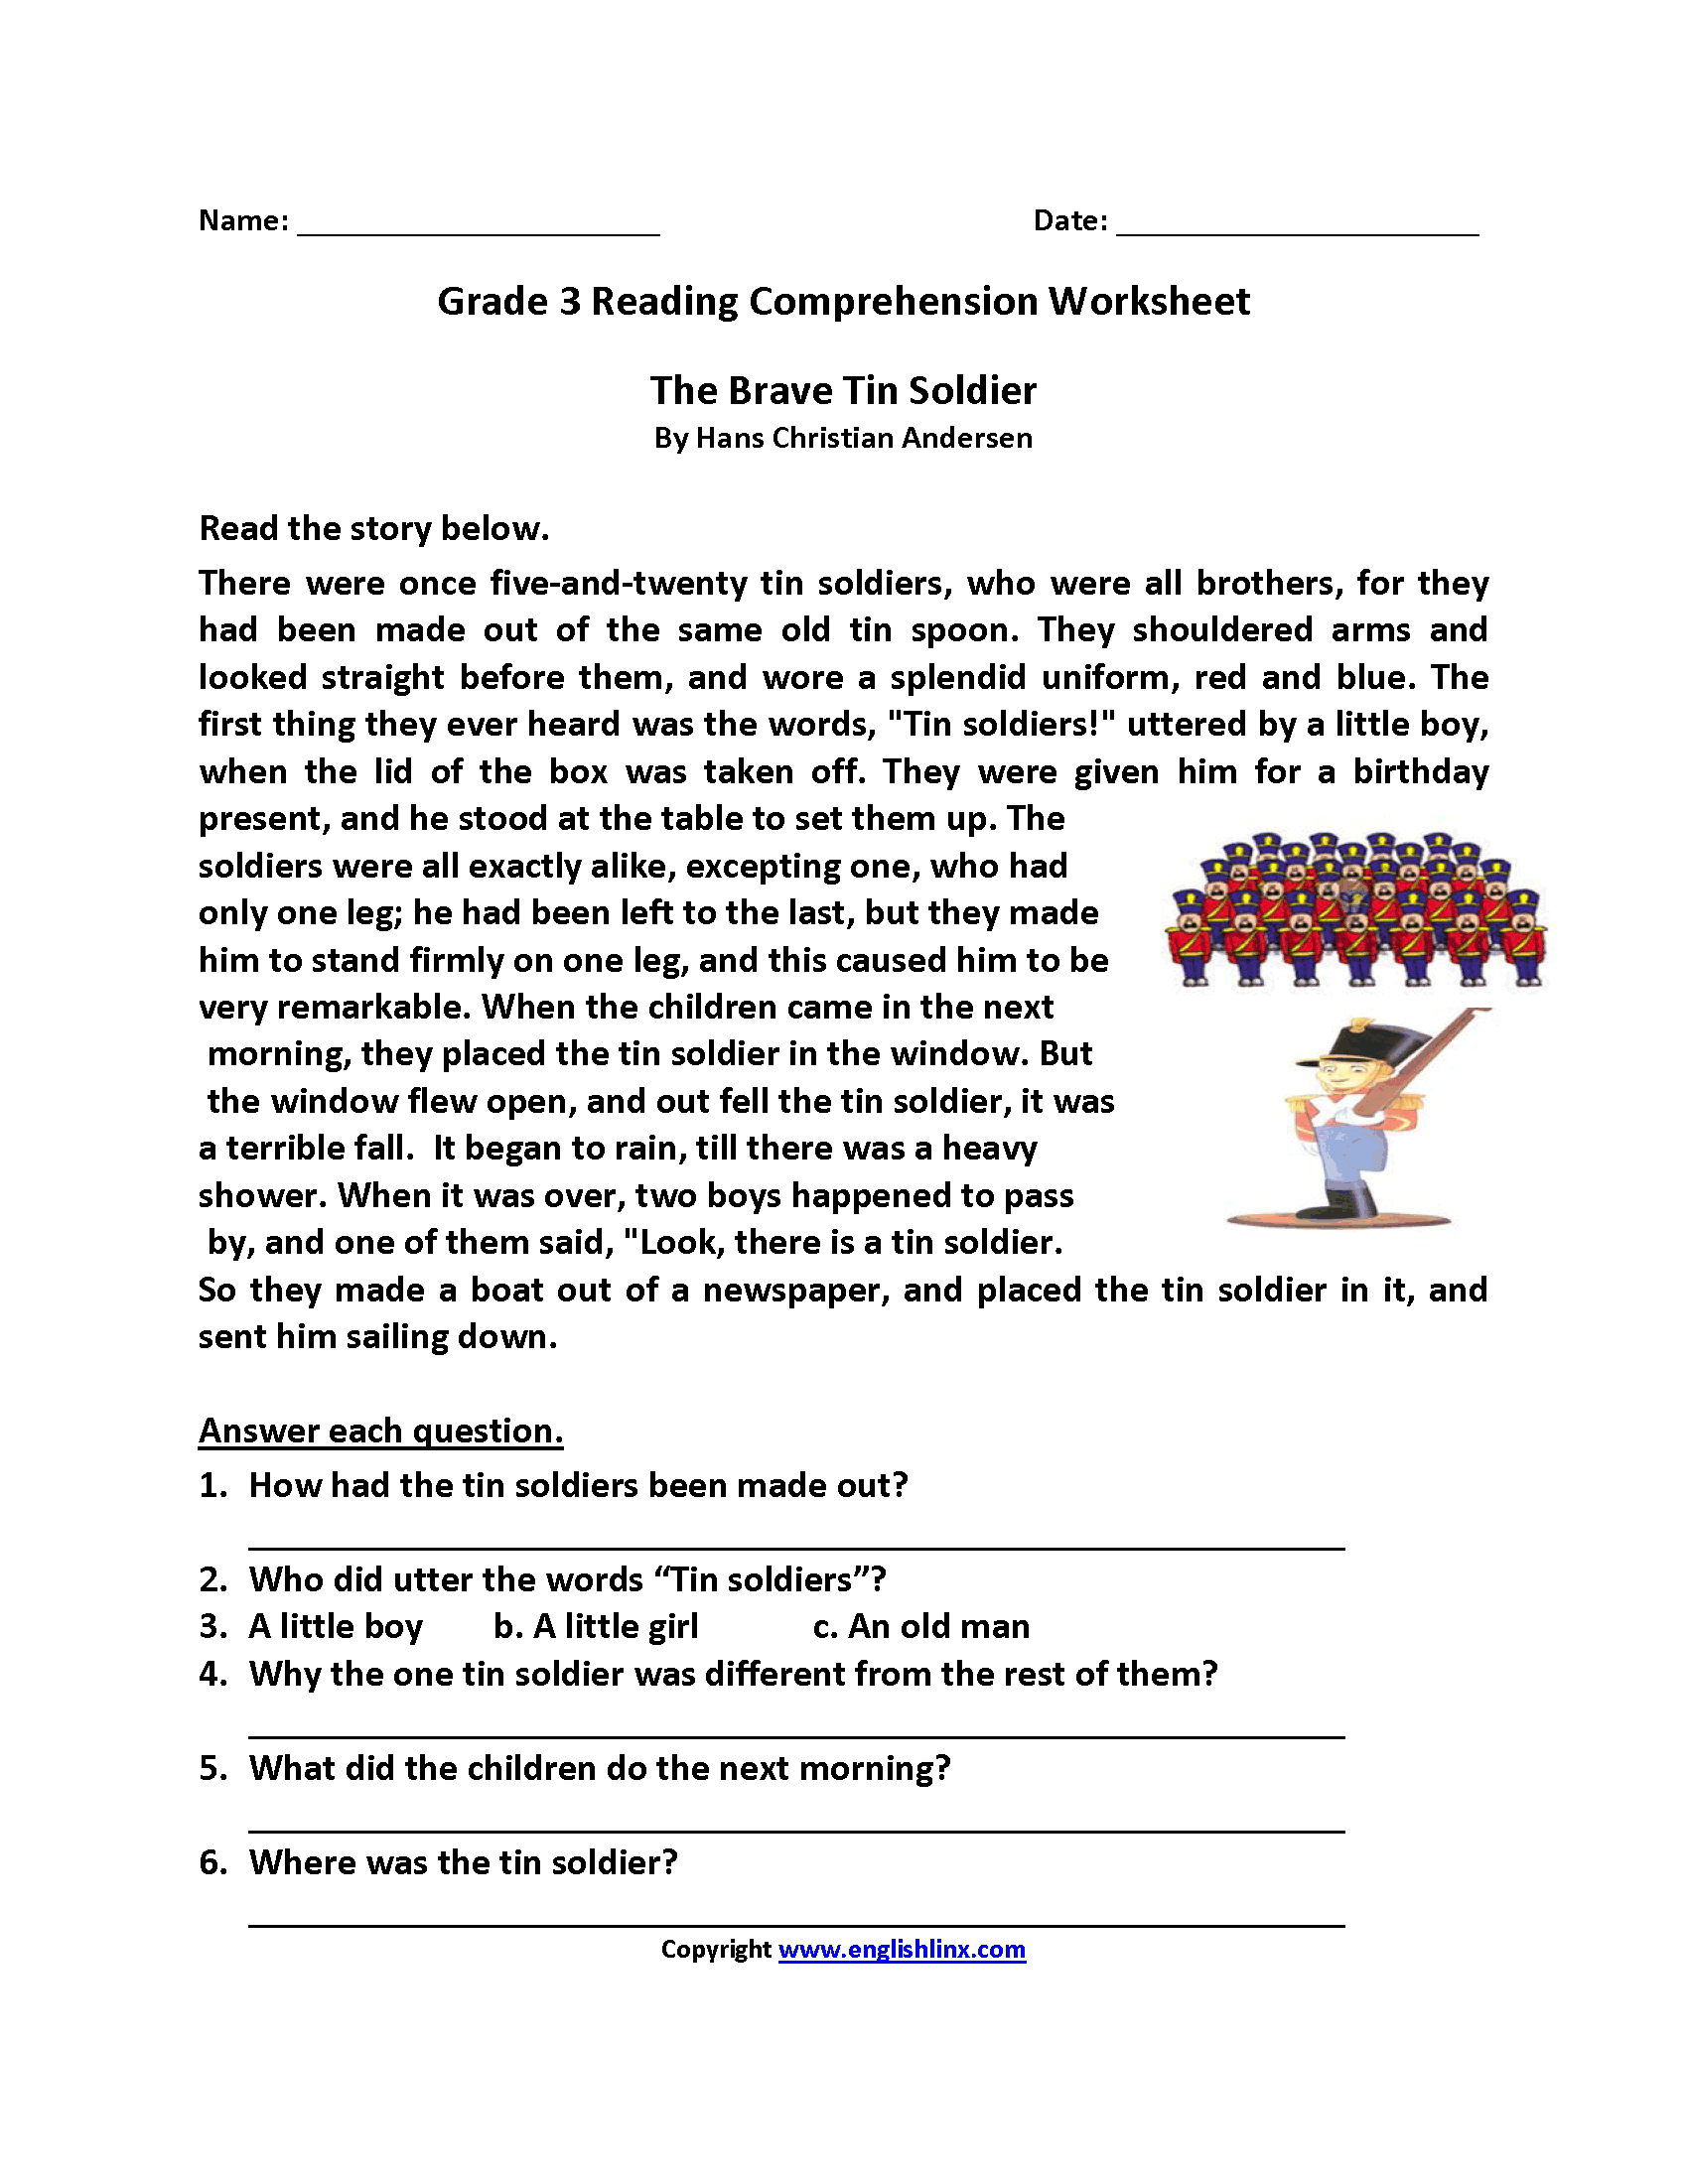 - Brave Tin Soldier Third Grade Reading Worksheets Comprehension